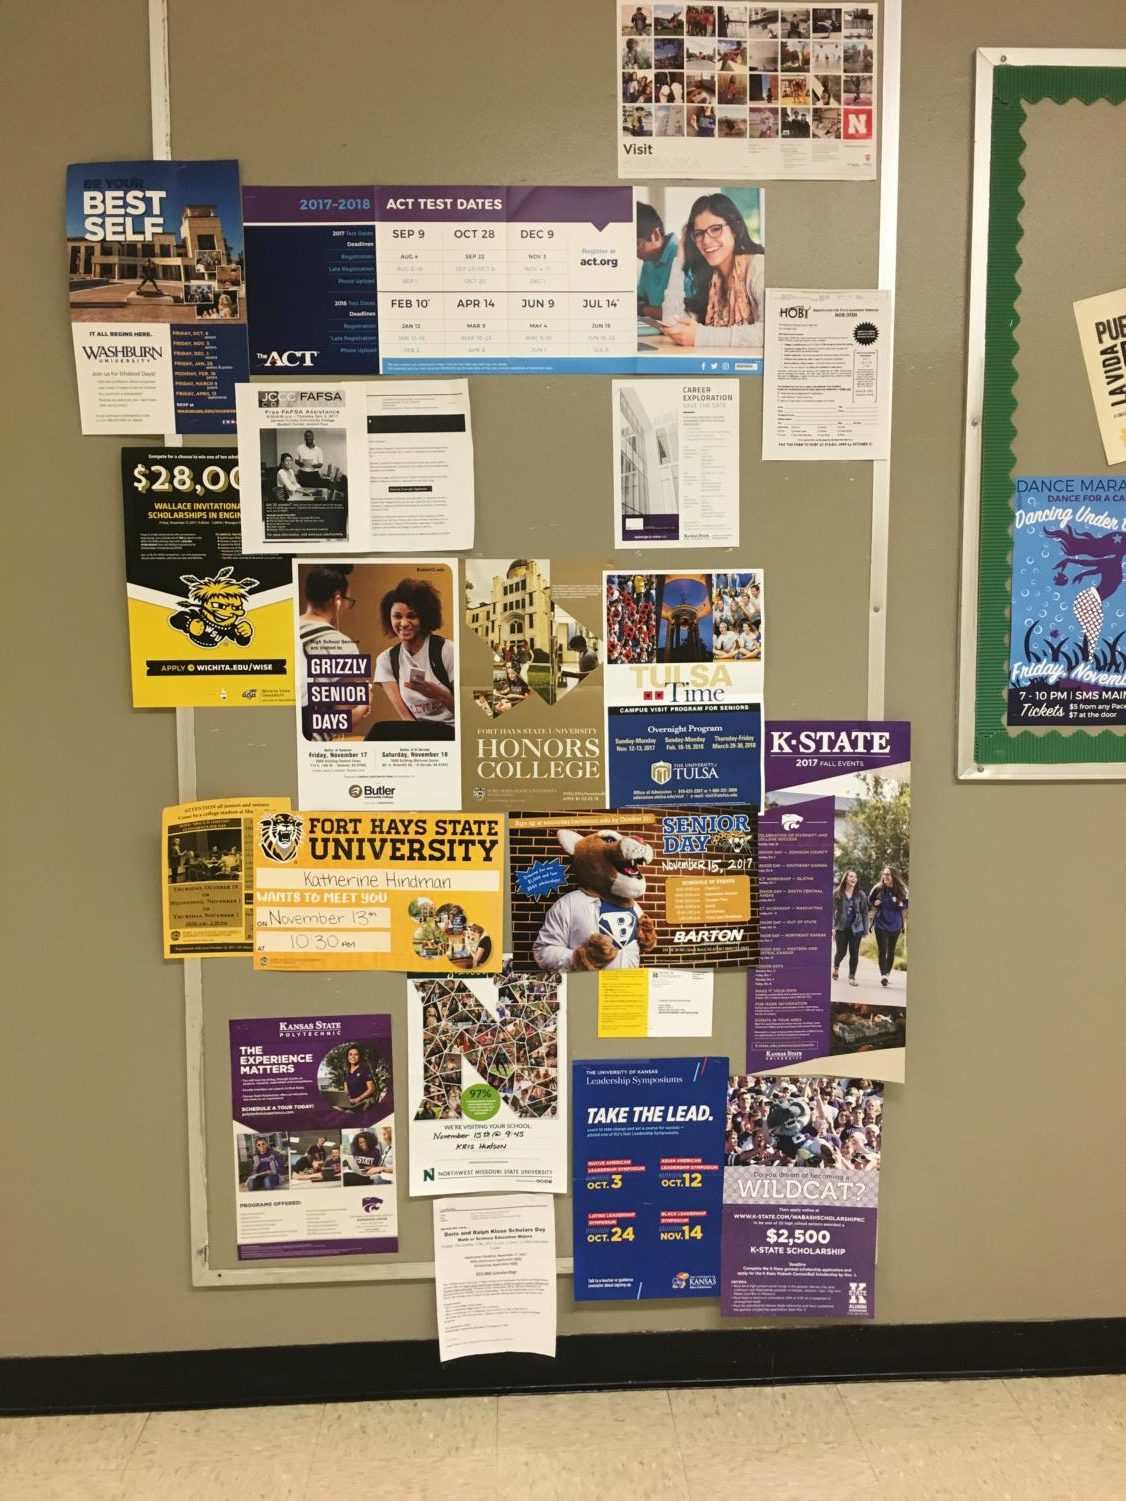 If you need any extra information on colleges, then take a trip down the counseling halls. There is a board with many different colleges and college information on it. It gives students scholarships possibilities, ACT and college visit times. Next time you're walking down the counseling hall take a look at the board.